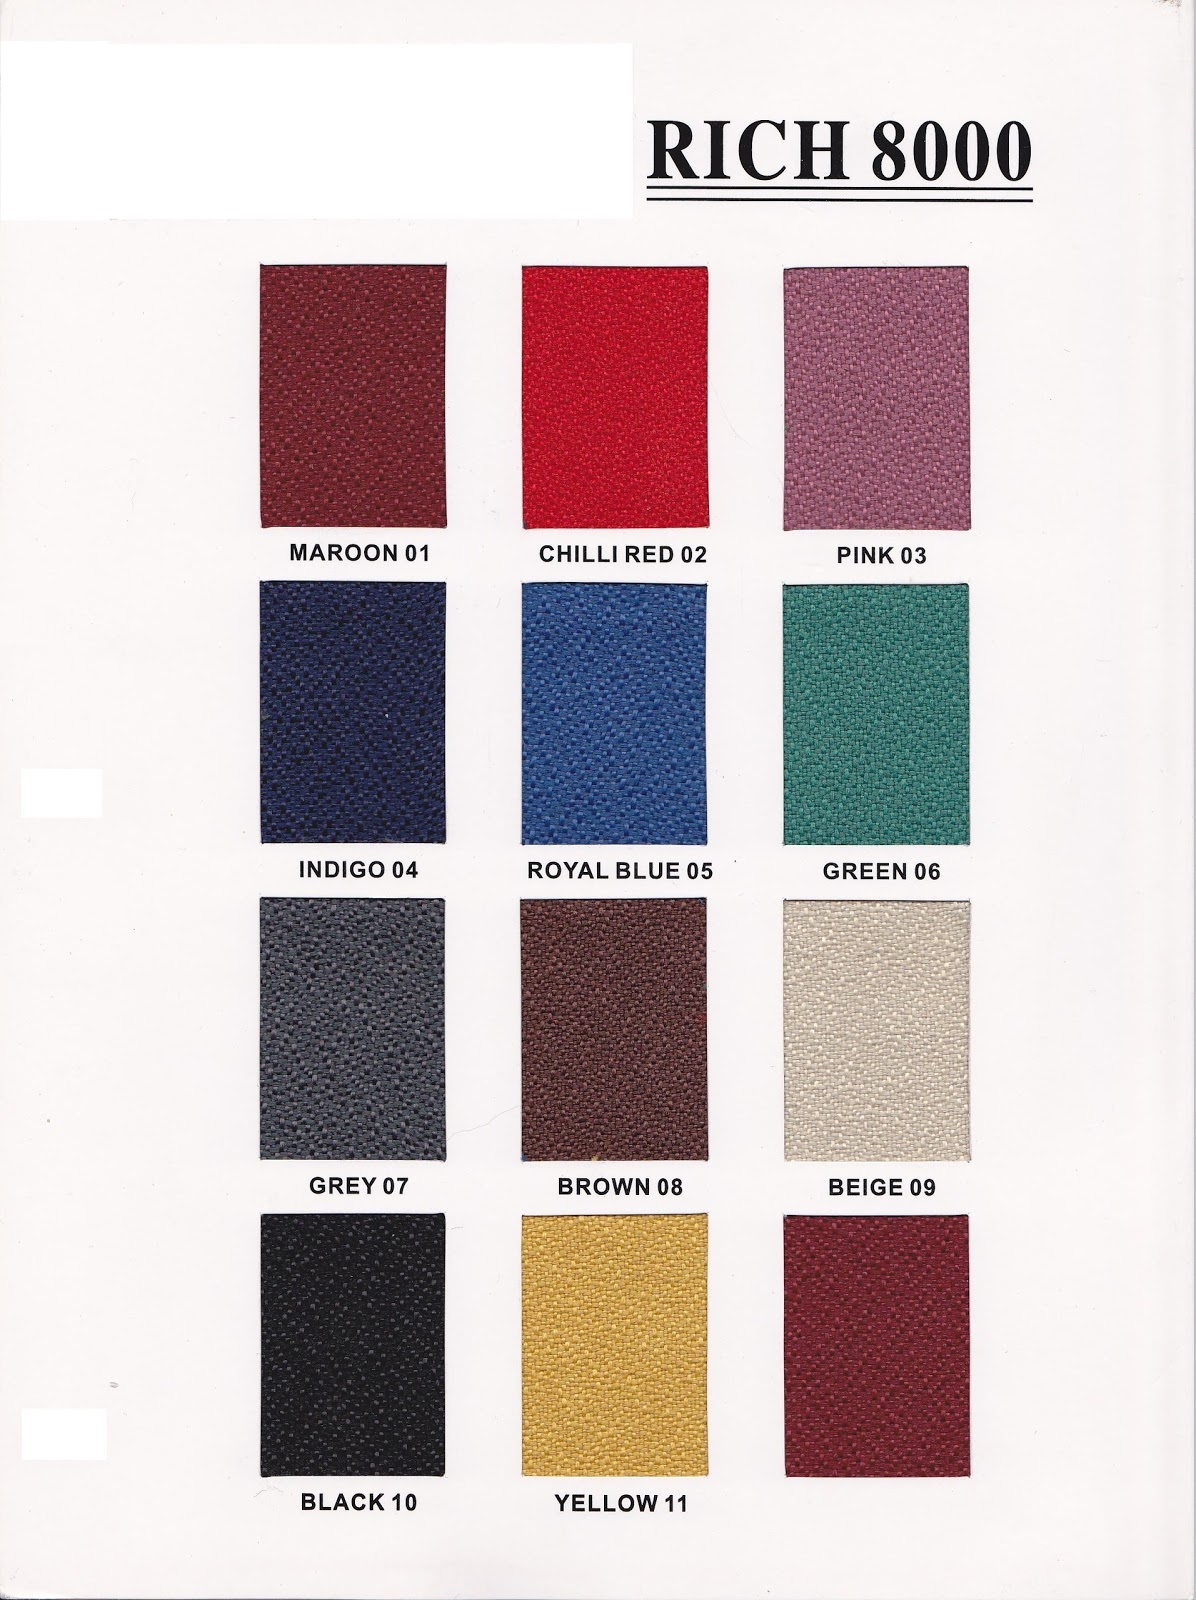 FOCUS TNL OFFICE CONCEPT: Color Chart for Chairs